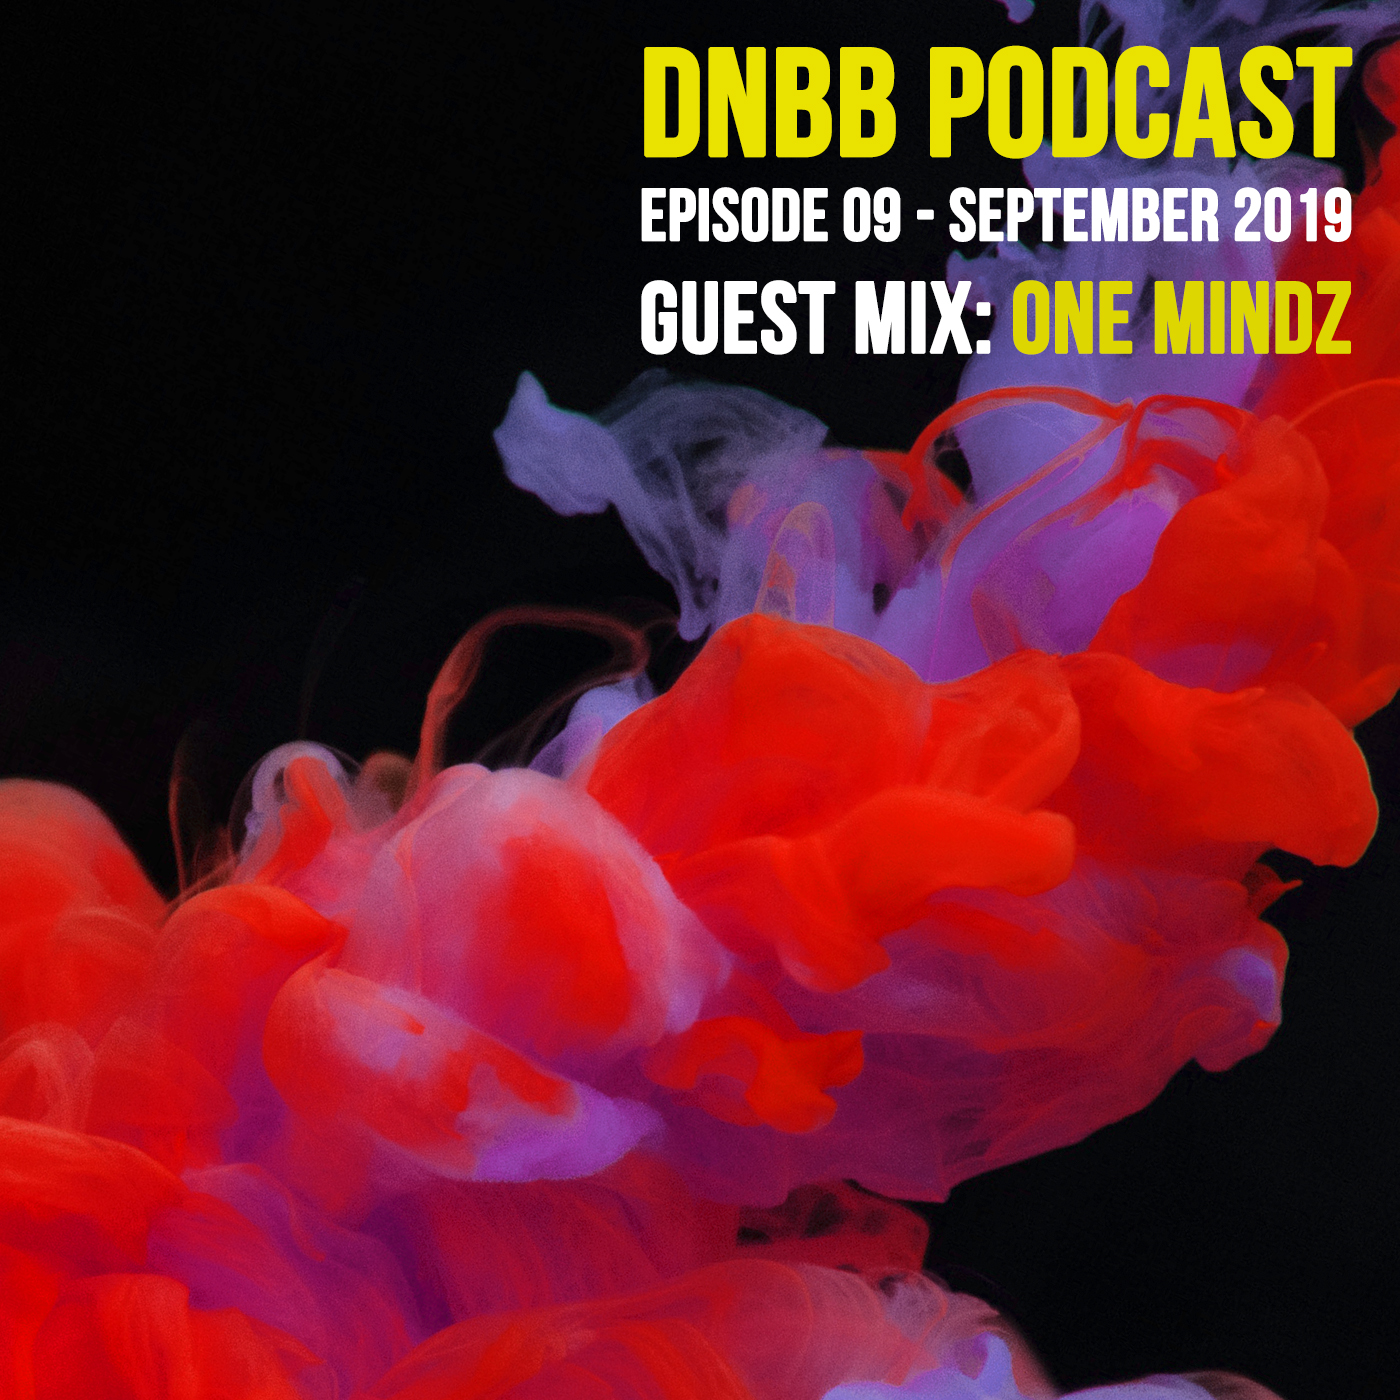 DNBBCast008 by One Mindz